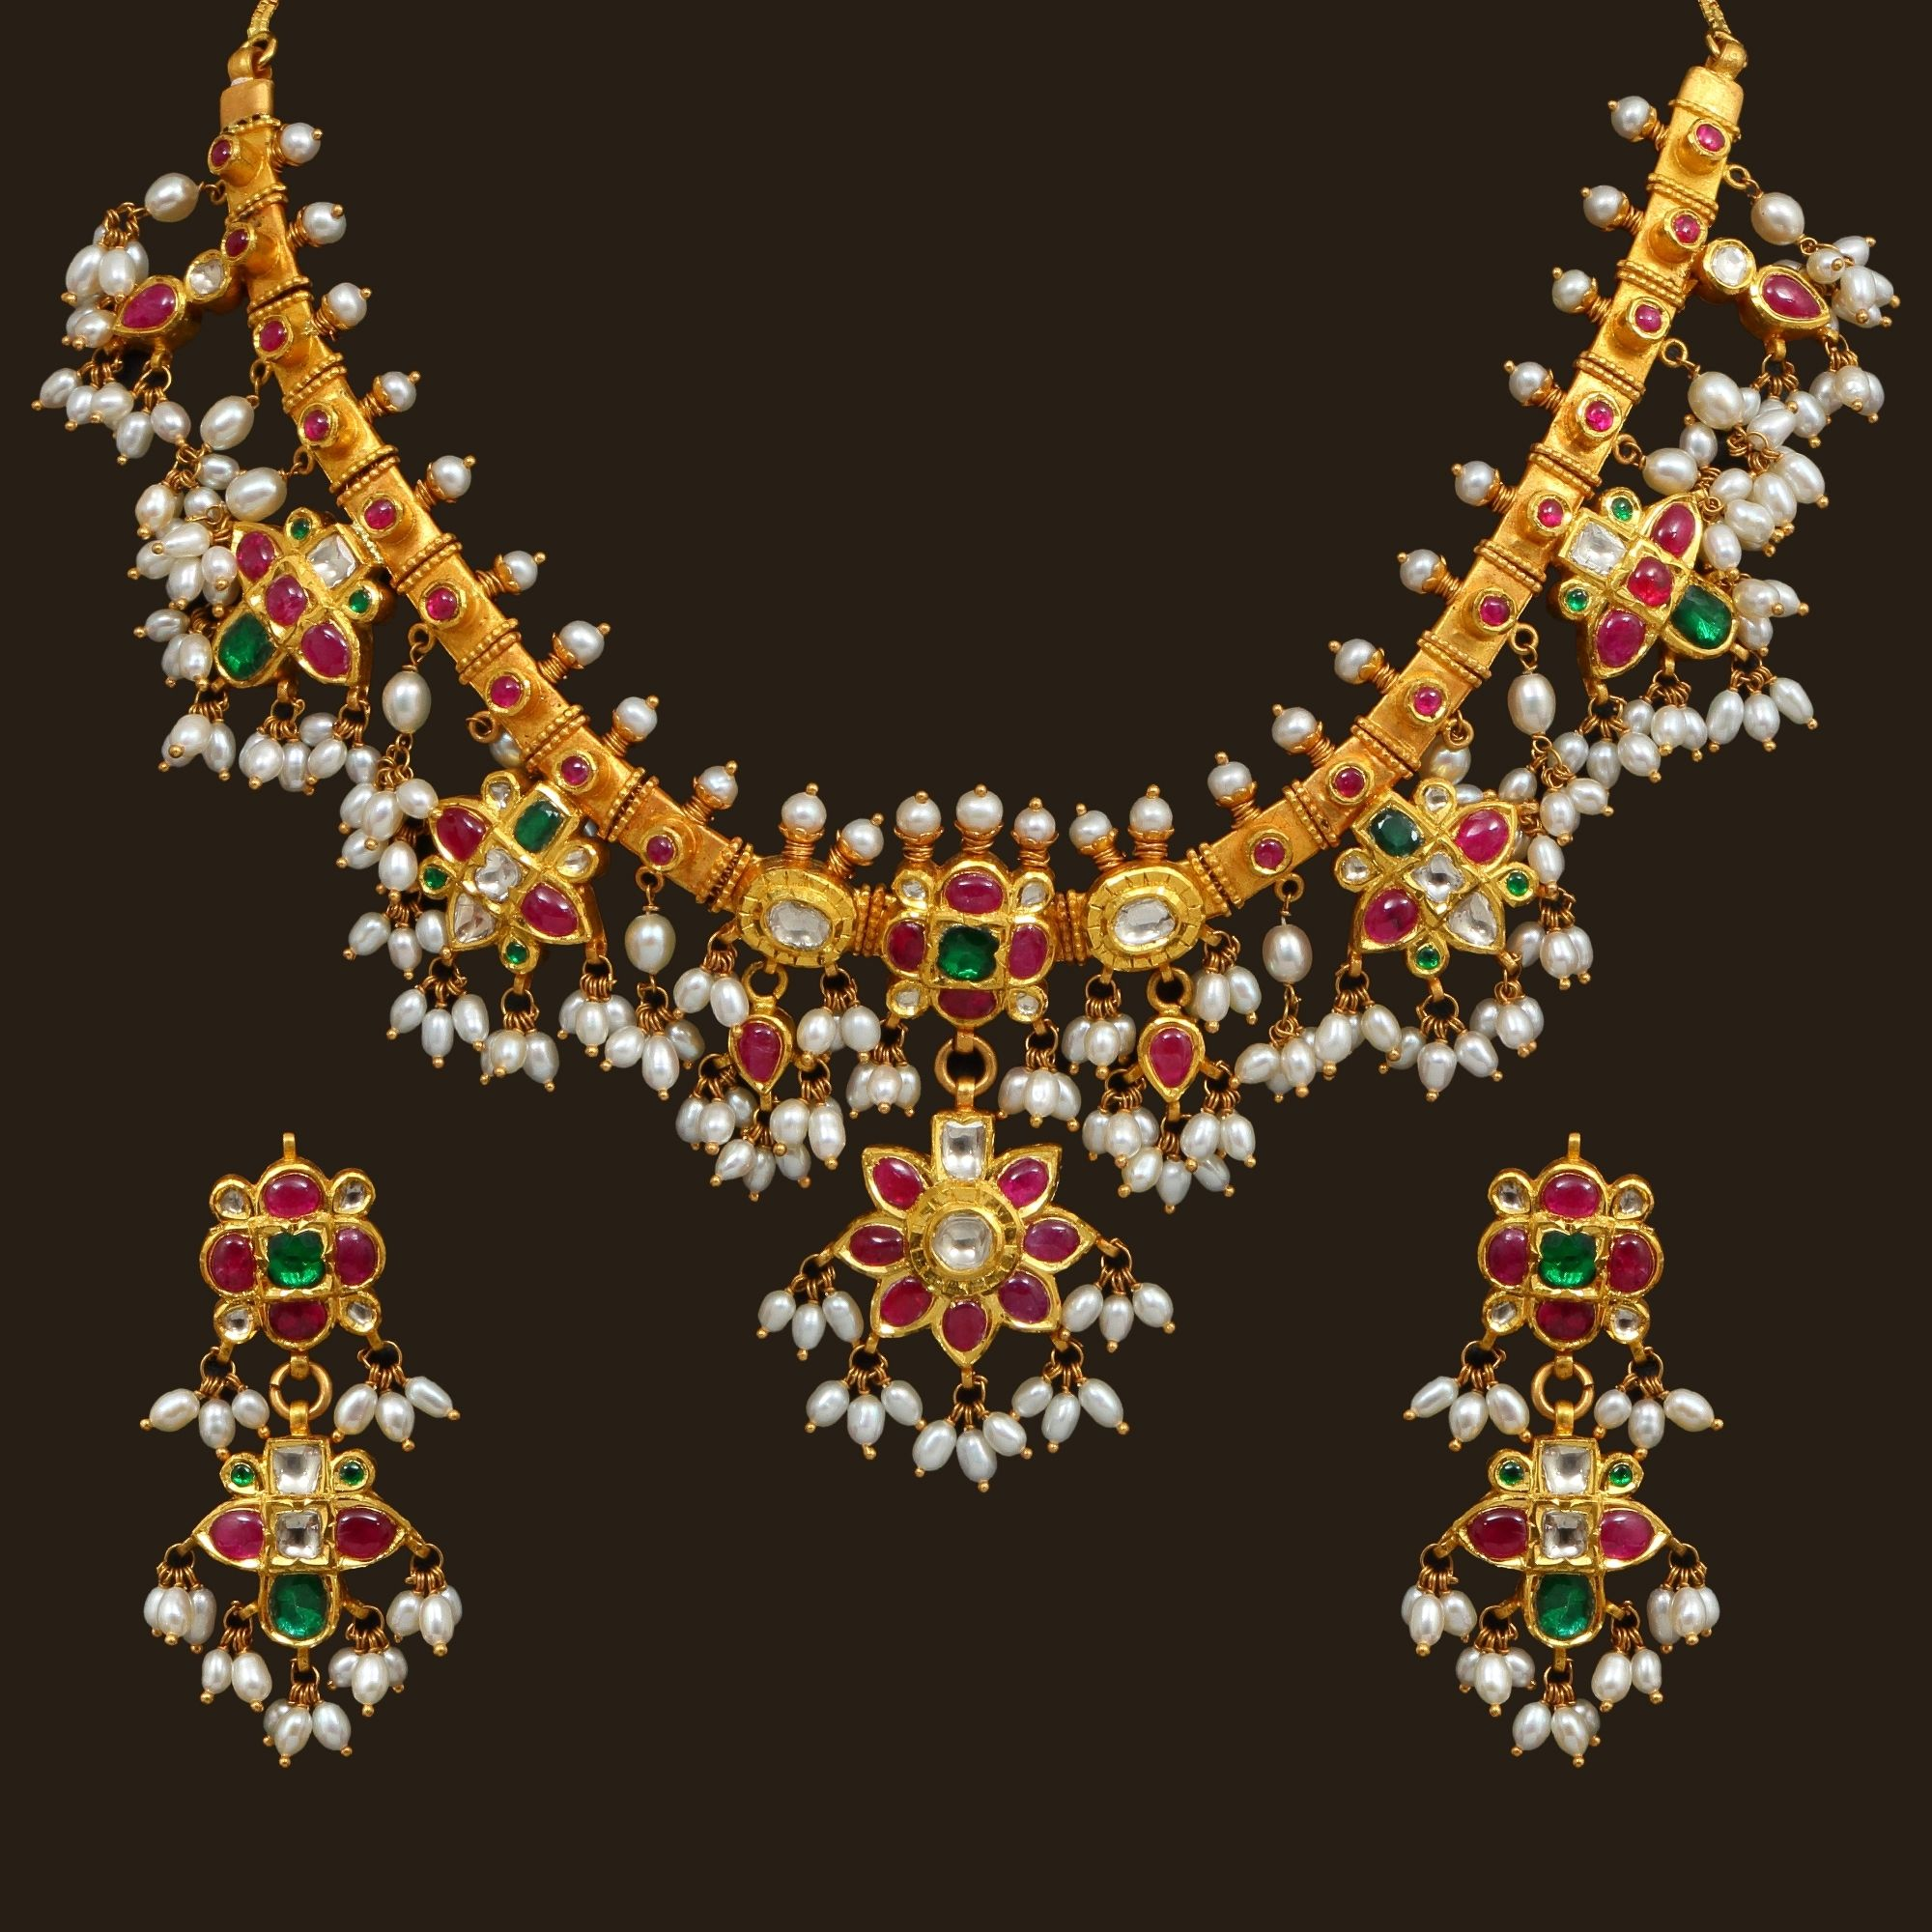 Pin by aruna on aruna in pinterest gold pearl necklace